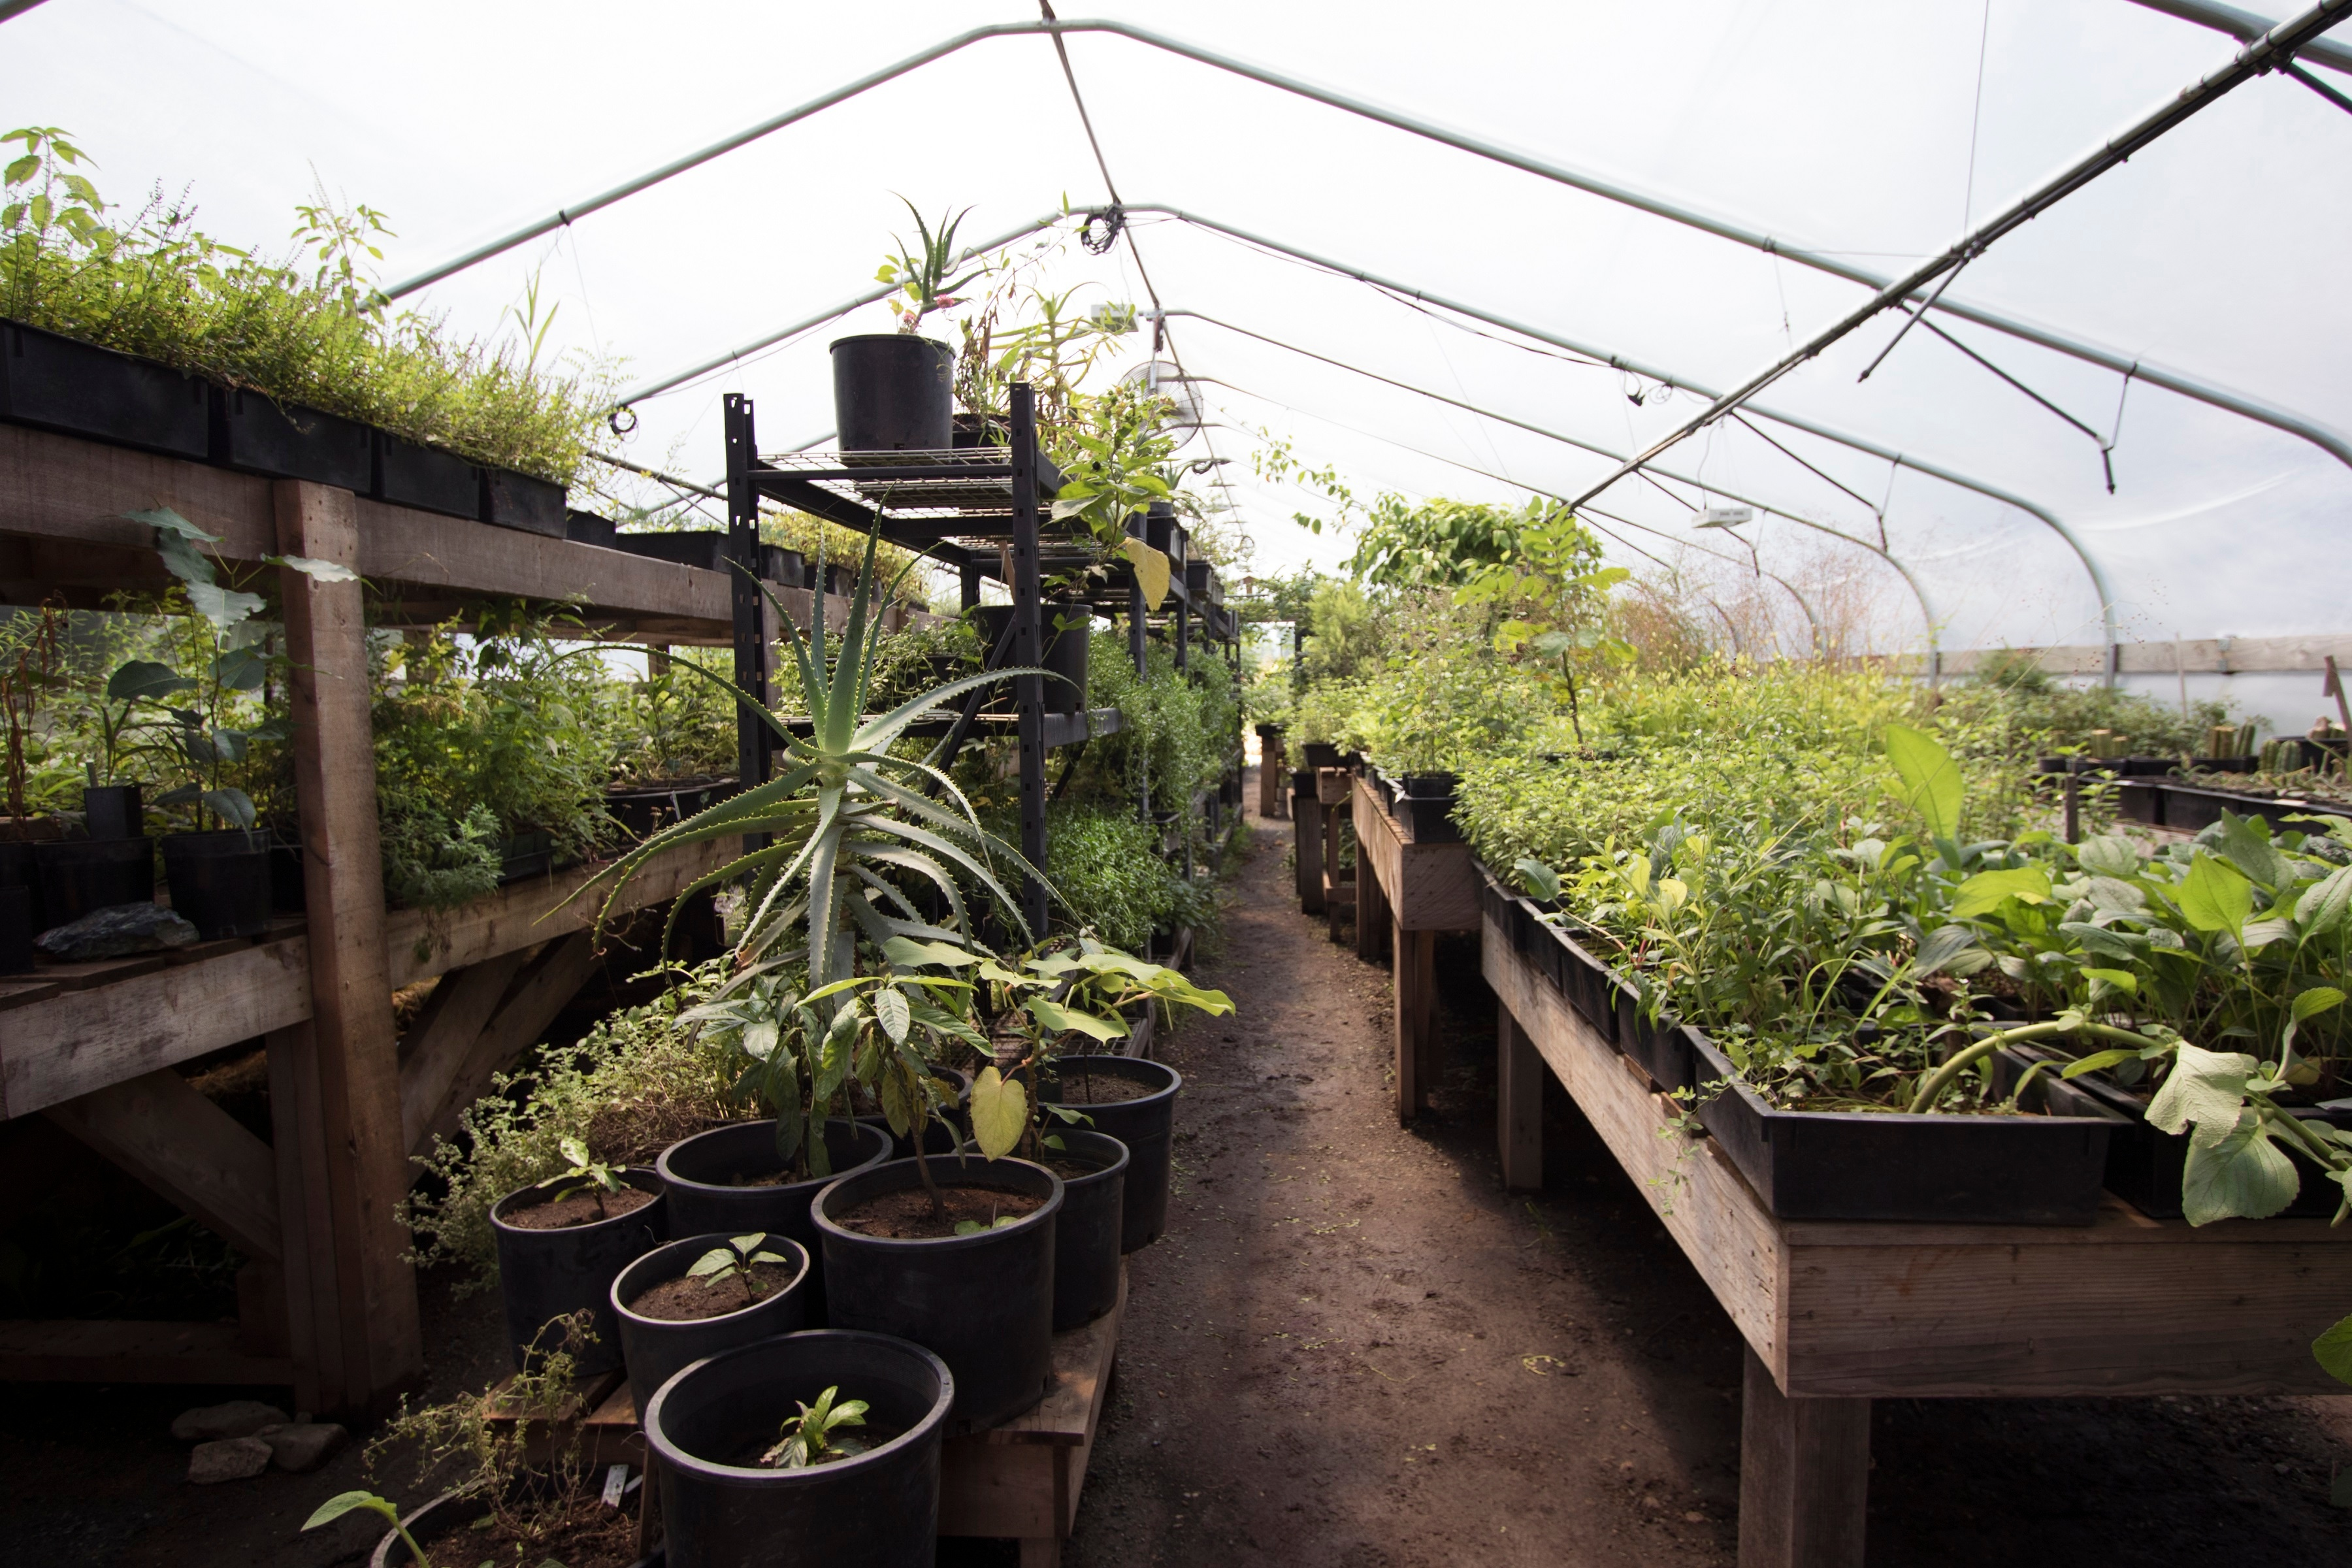 Inside Richo's Greenhouse with Garden Beds and Pots